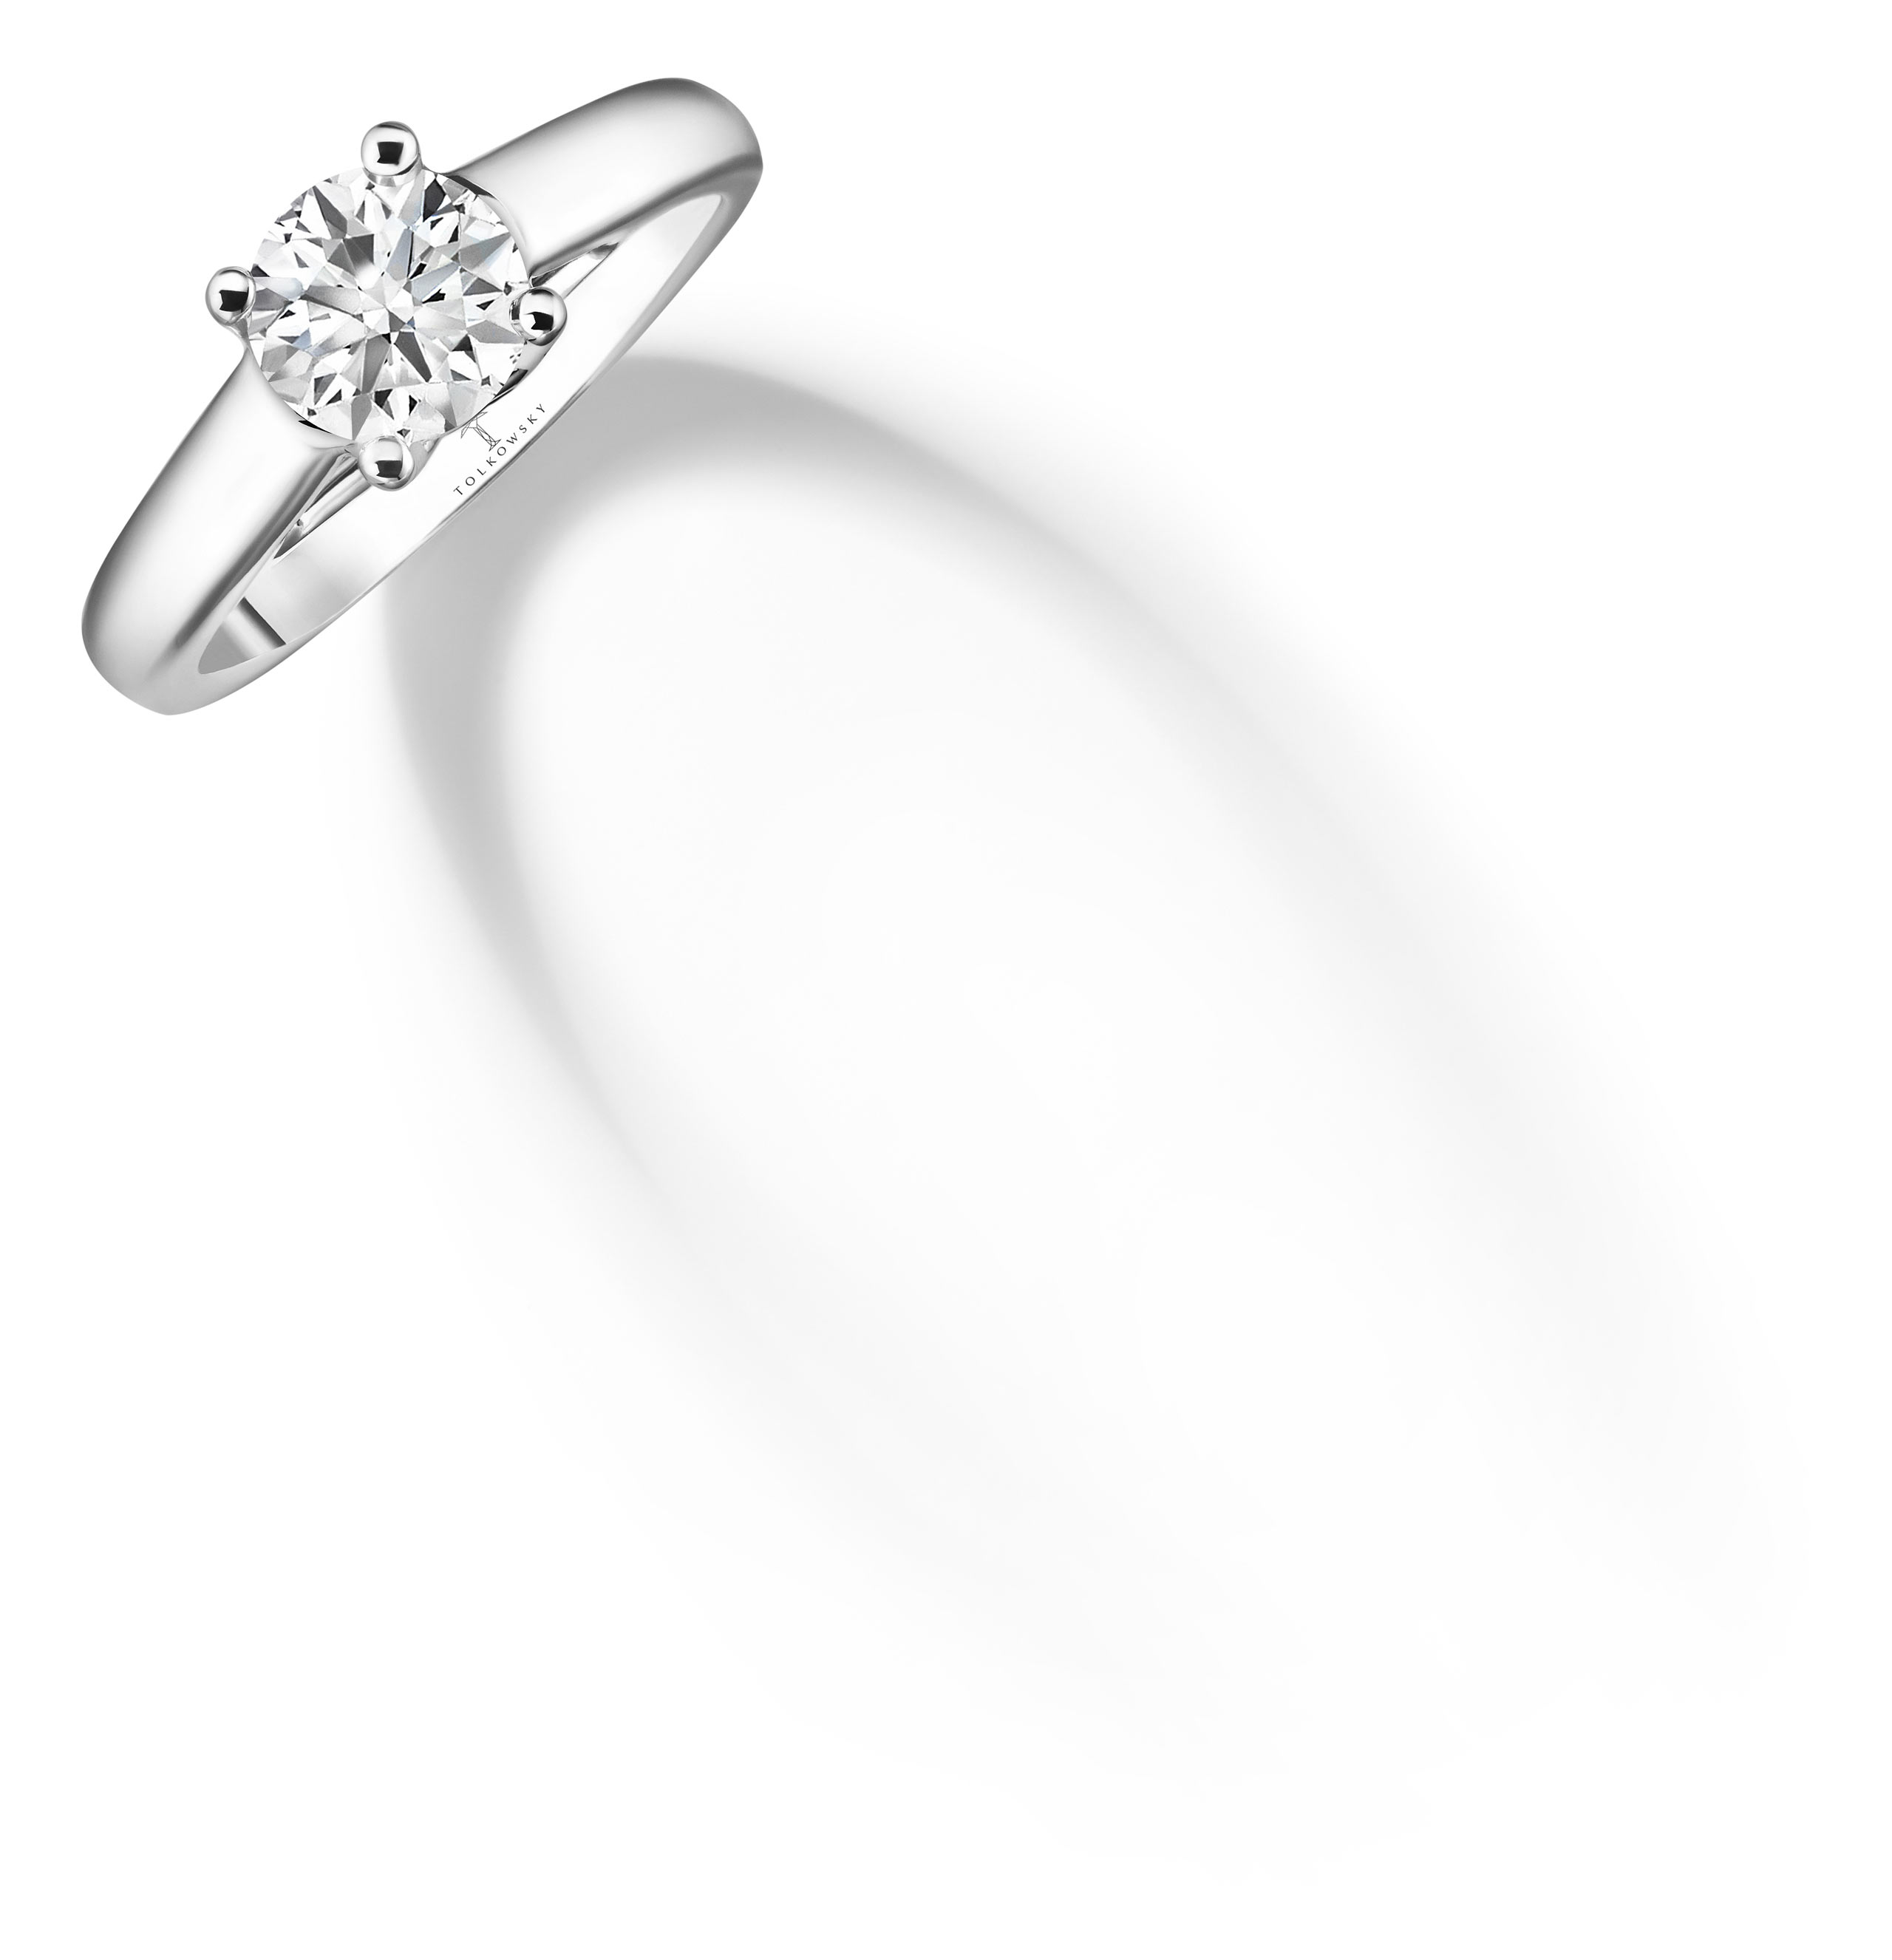 diamond half a shop rings conversion outlet starburst shoe ring s eternity women engagement suzanne kalan